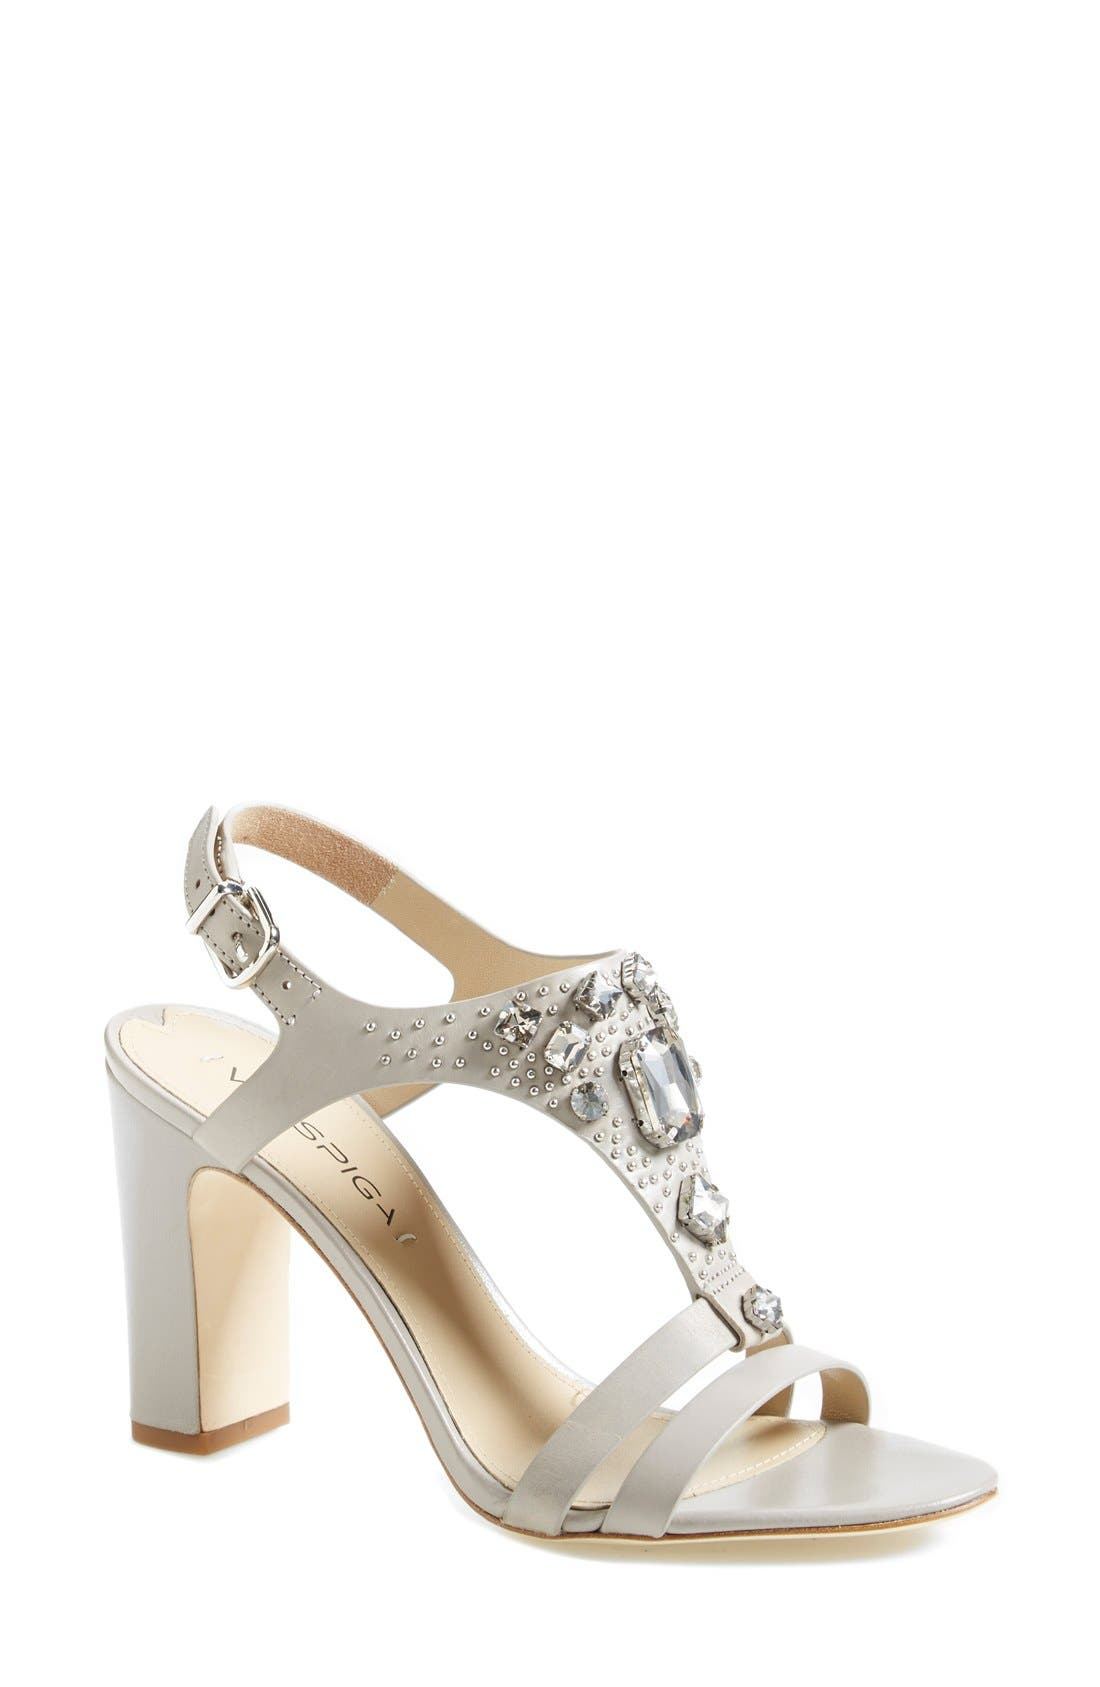 Alternate Image 1 Selected - Via Spiga 'Alec' Sandal (Women)